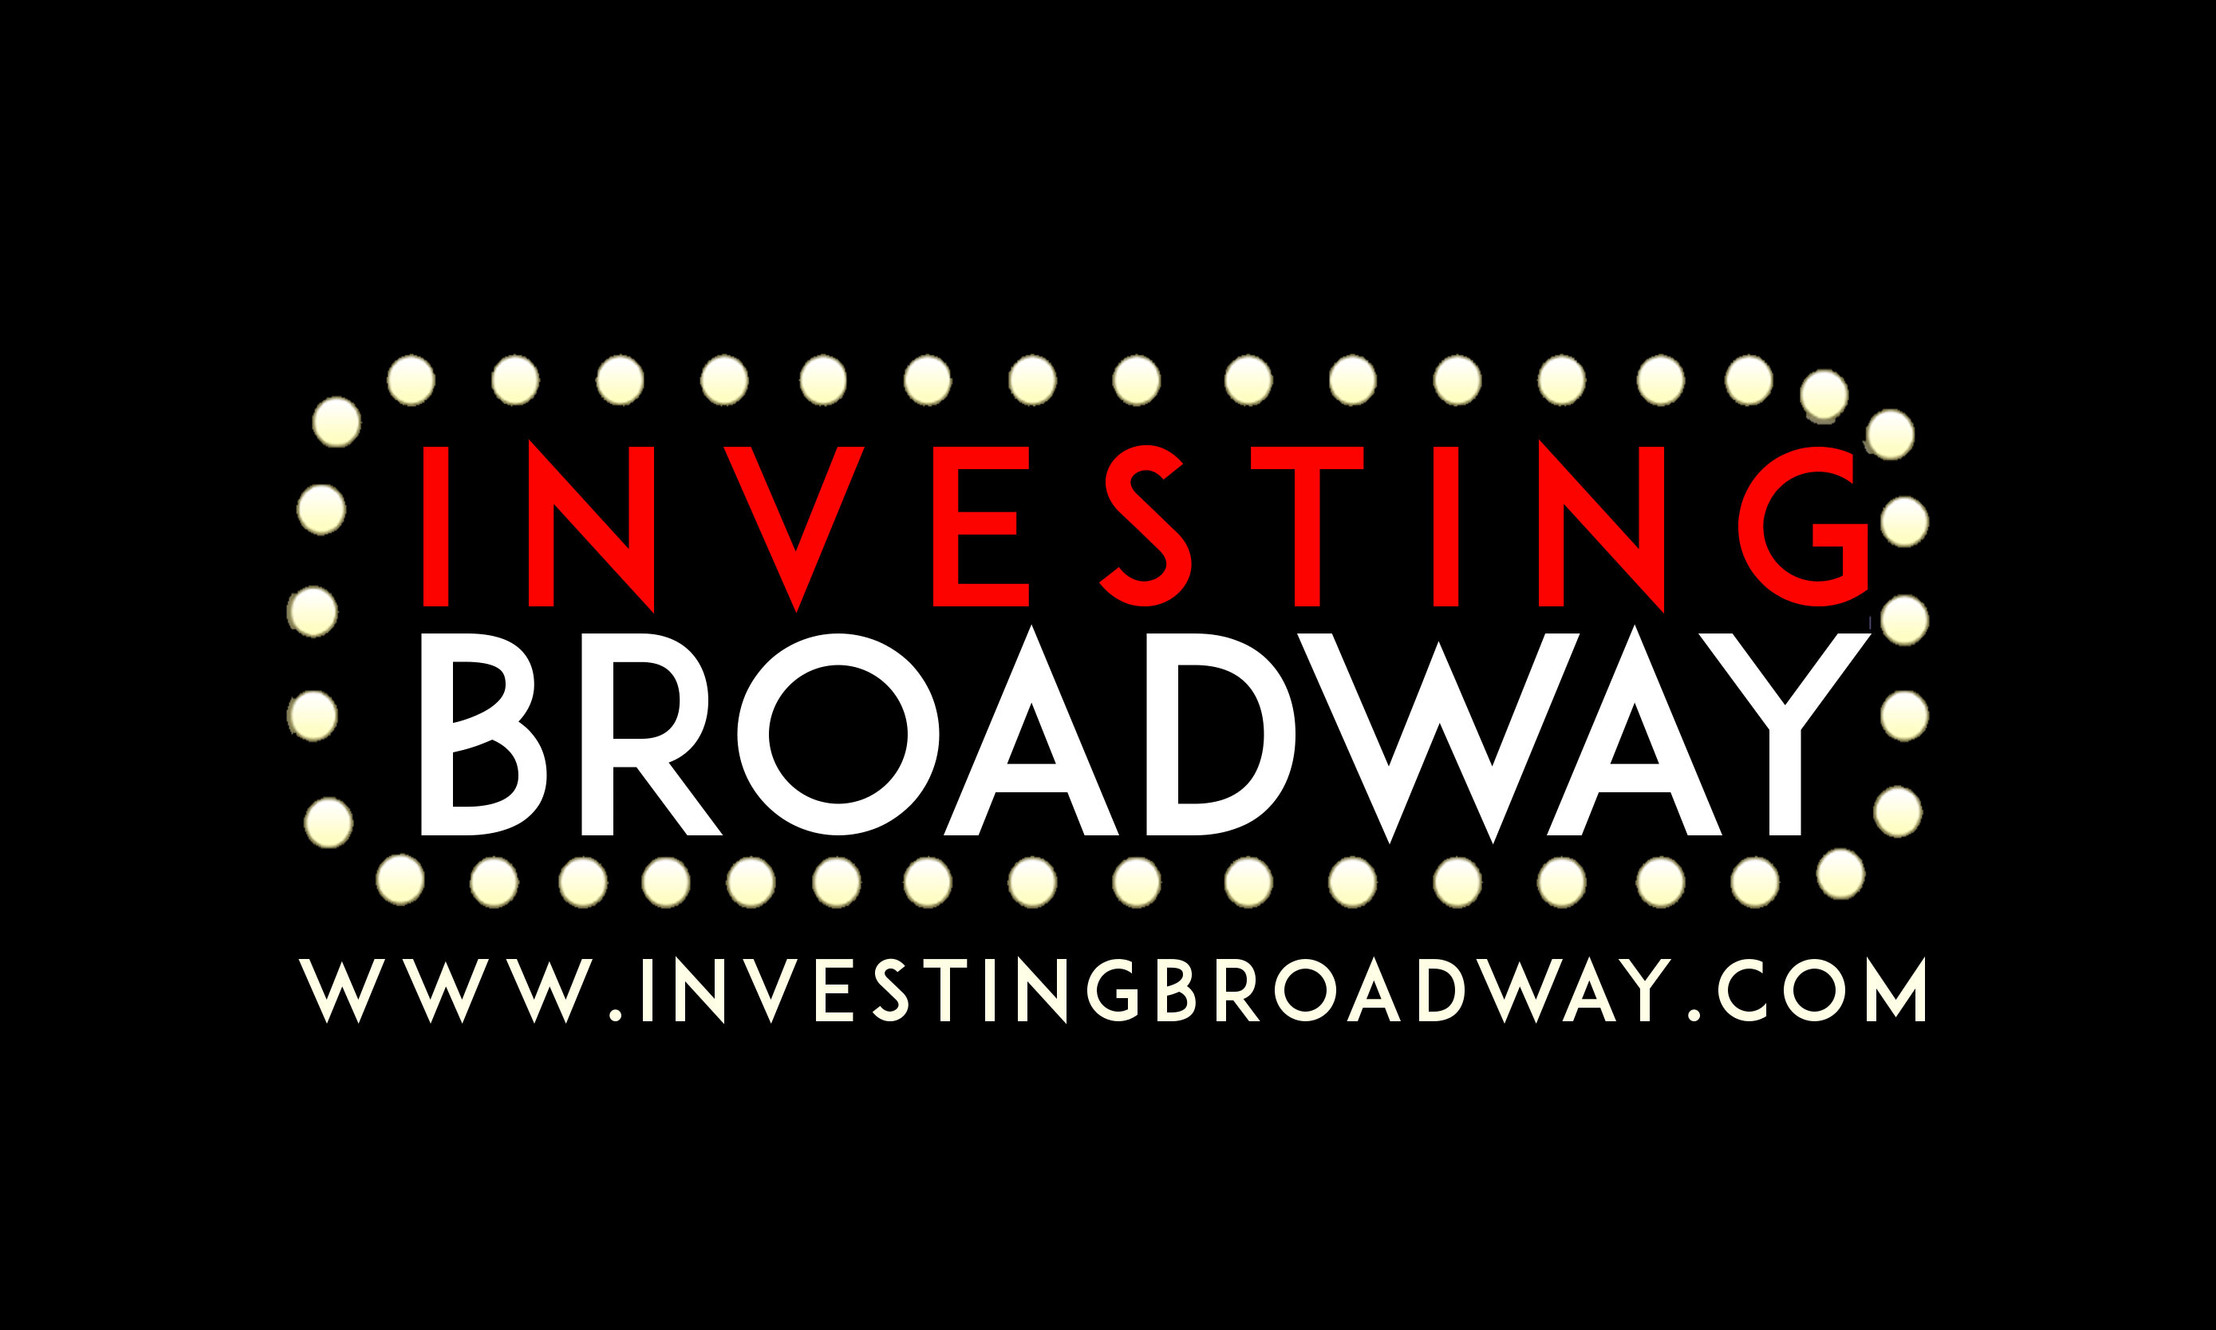 Broadway brothers investments california paid forex grid strategy money management